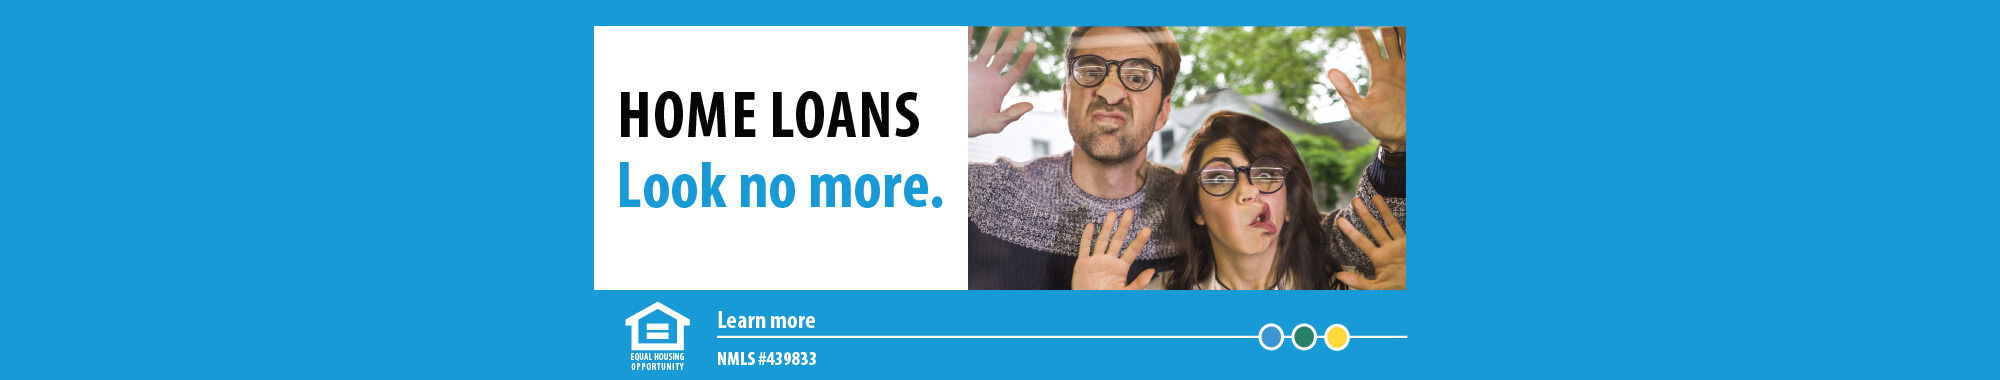 Home Loans - Look no more. Learn more